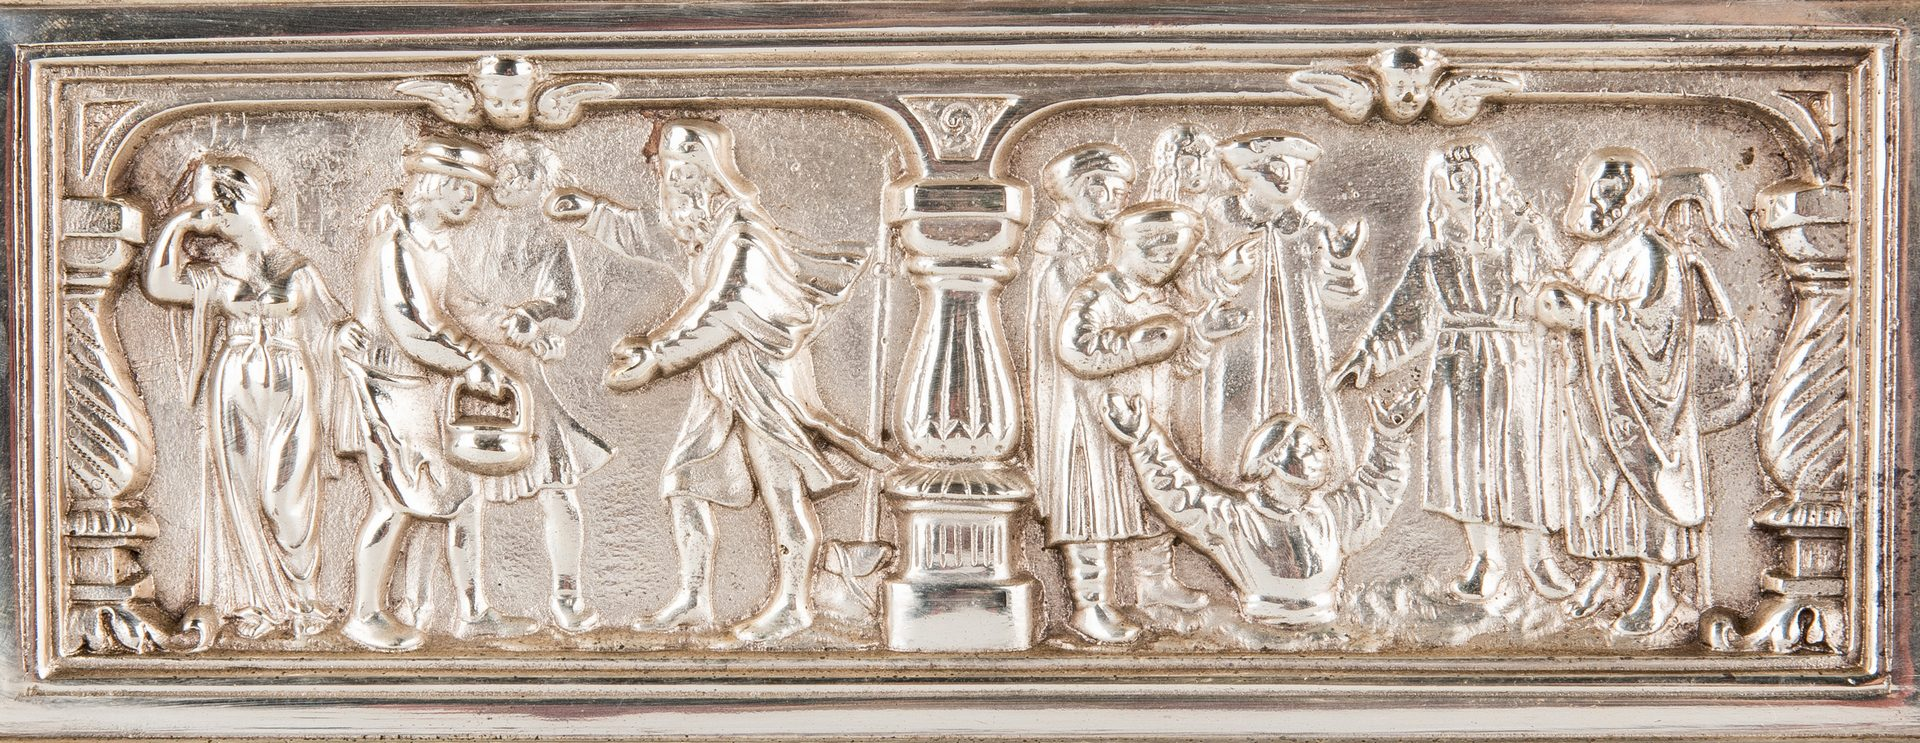 Lot 68: Silver Plated Reliquary or Money Box